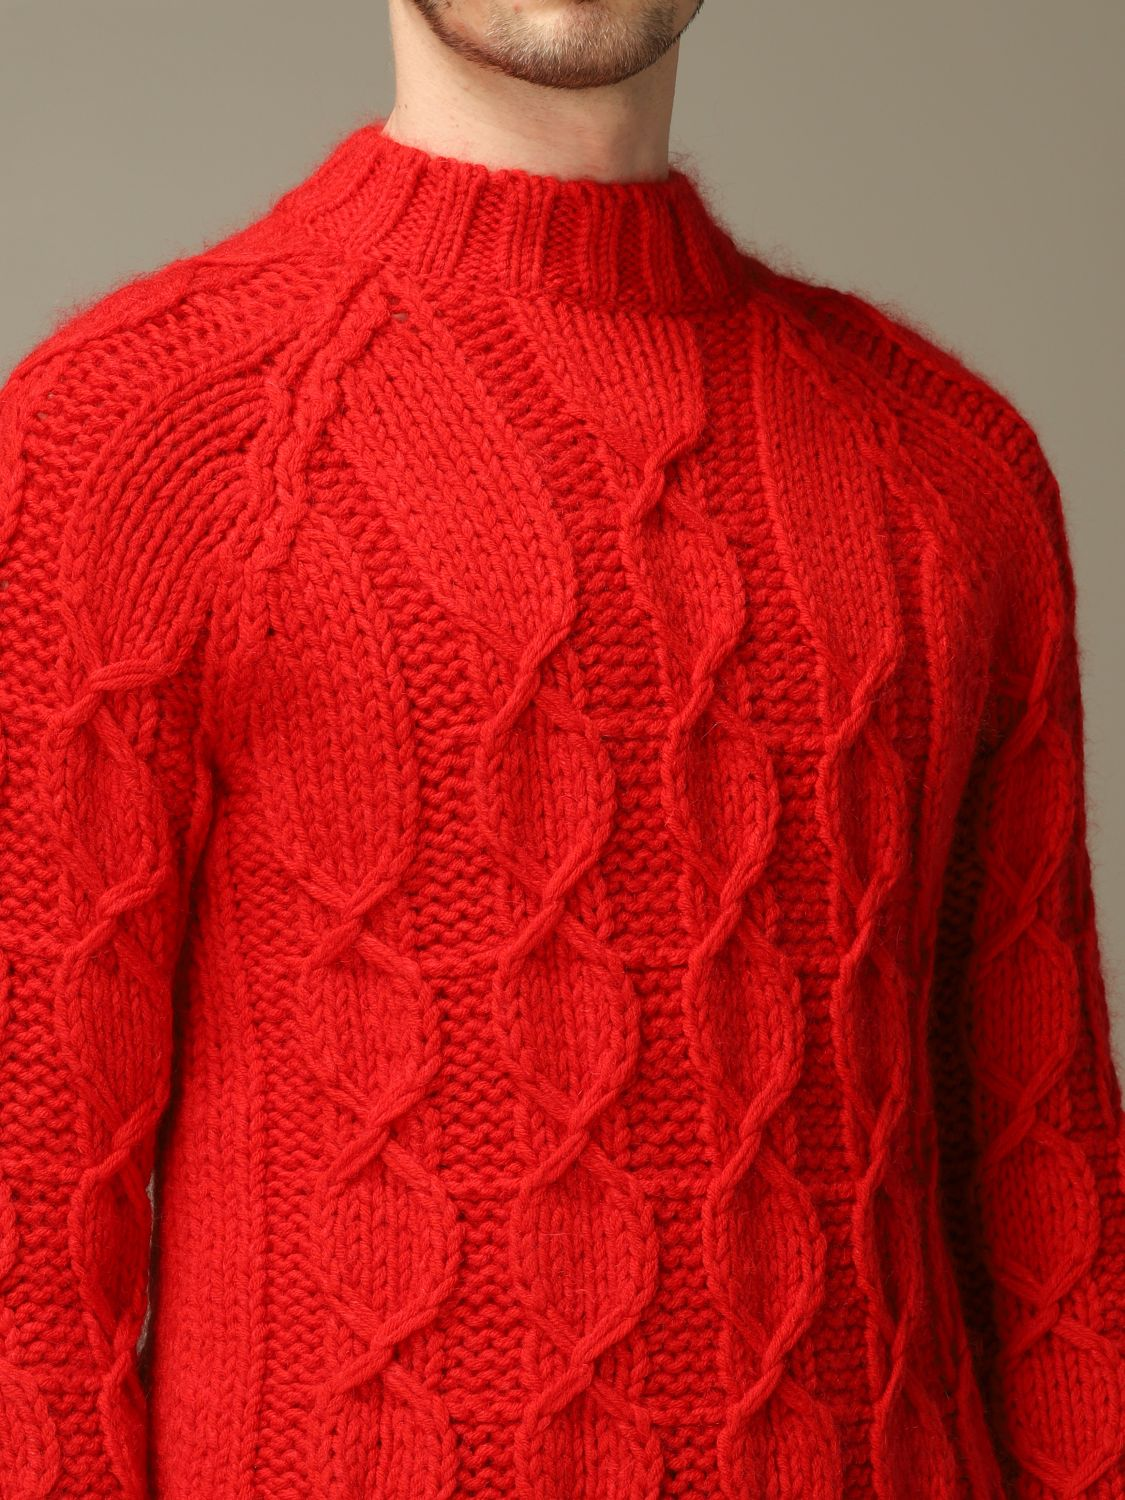 Sweater Saint Laurent: Saint Laurent cable sweater in Mohair wool red 4